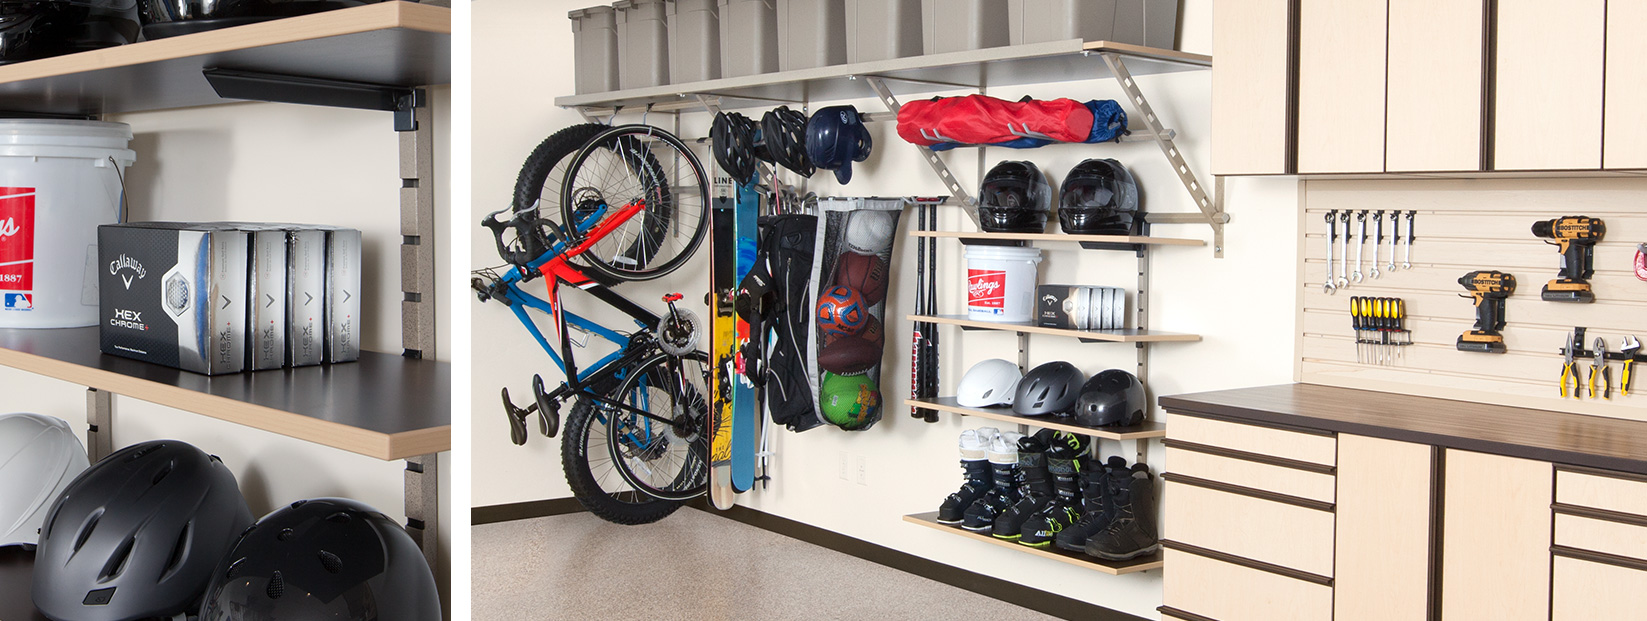 Garage Shelving System Logan